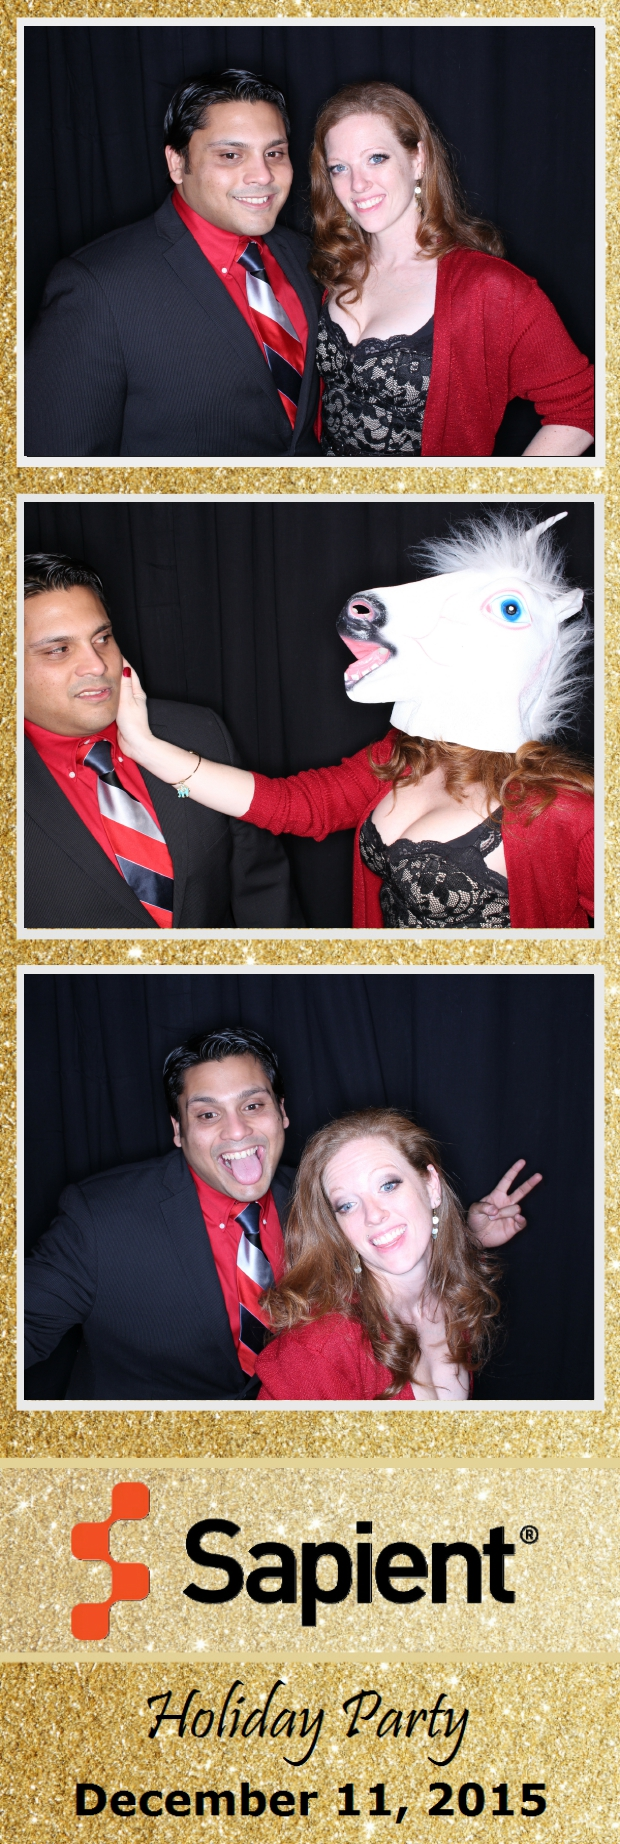 Guest House Events Photo Booth Sapient Holiday Party (106).jpg